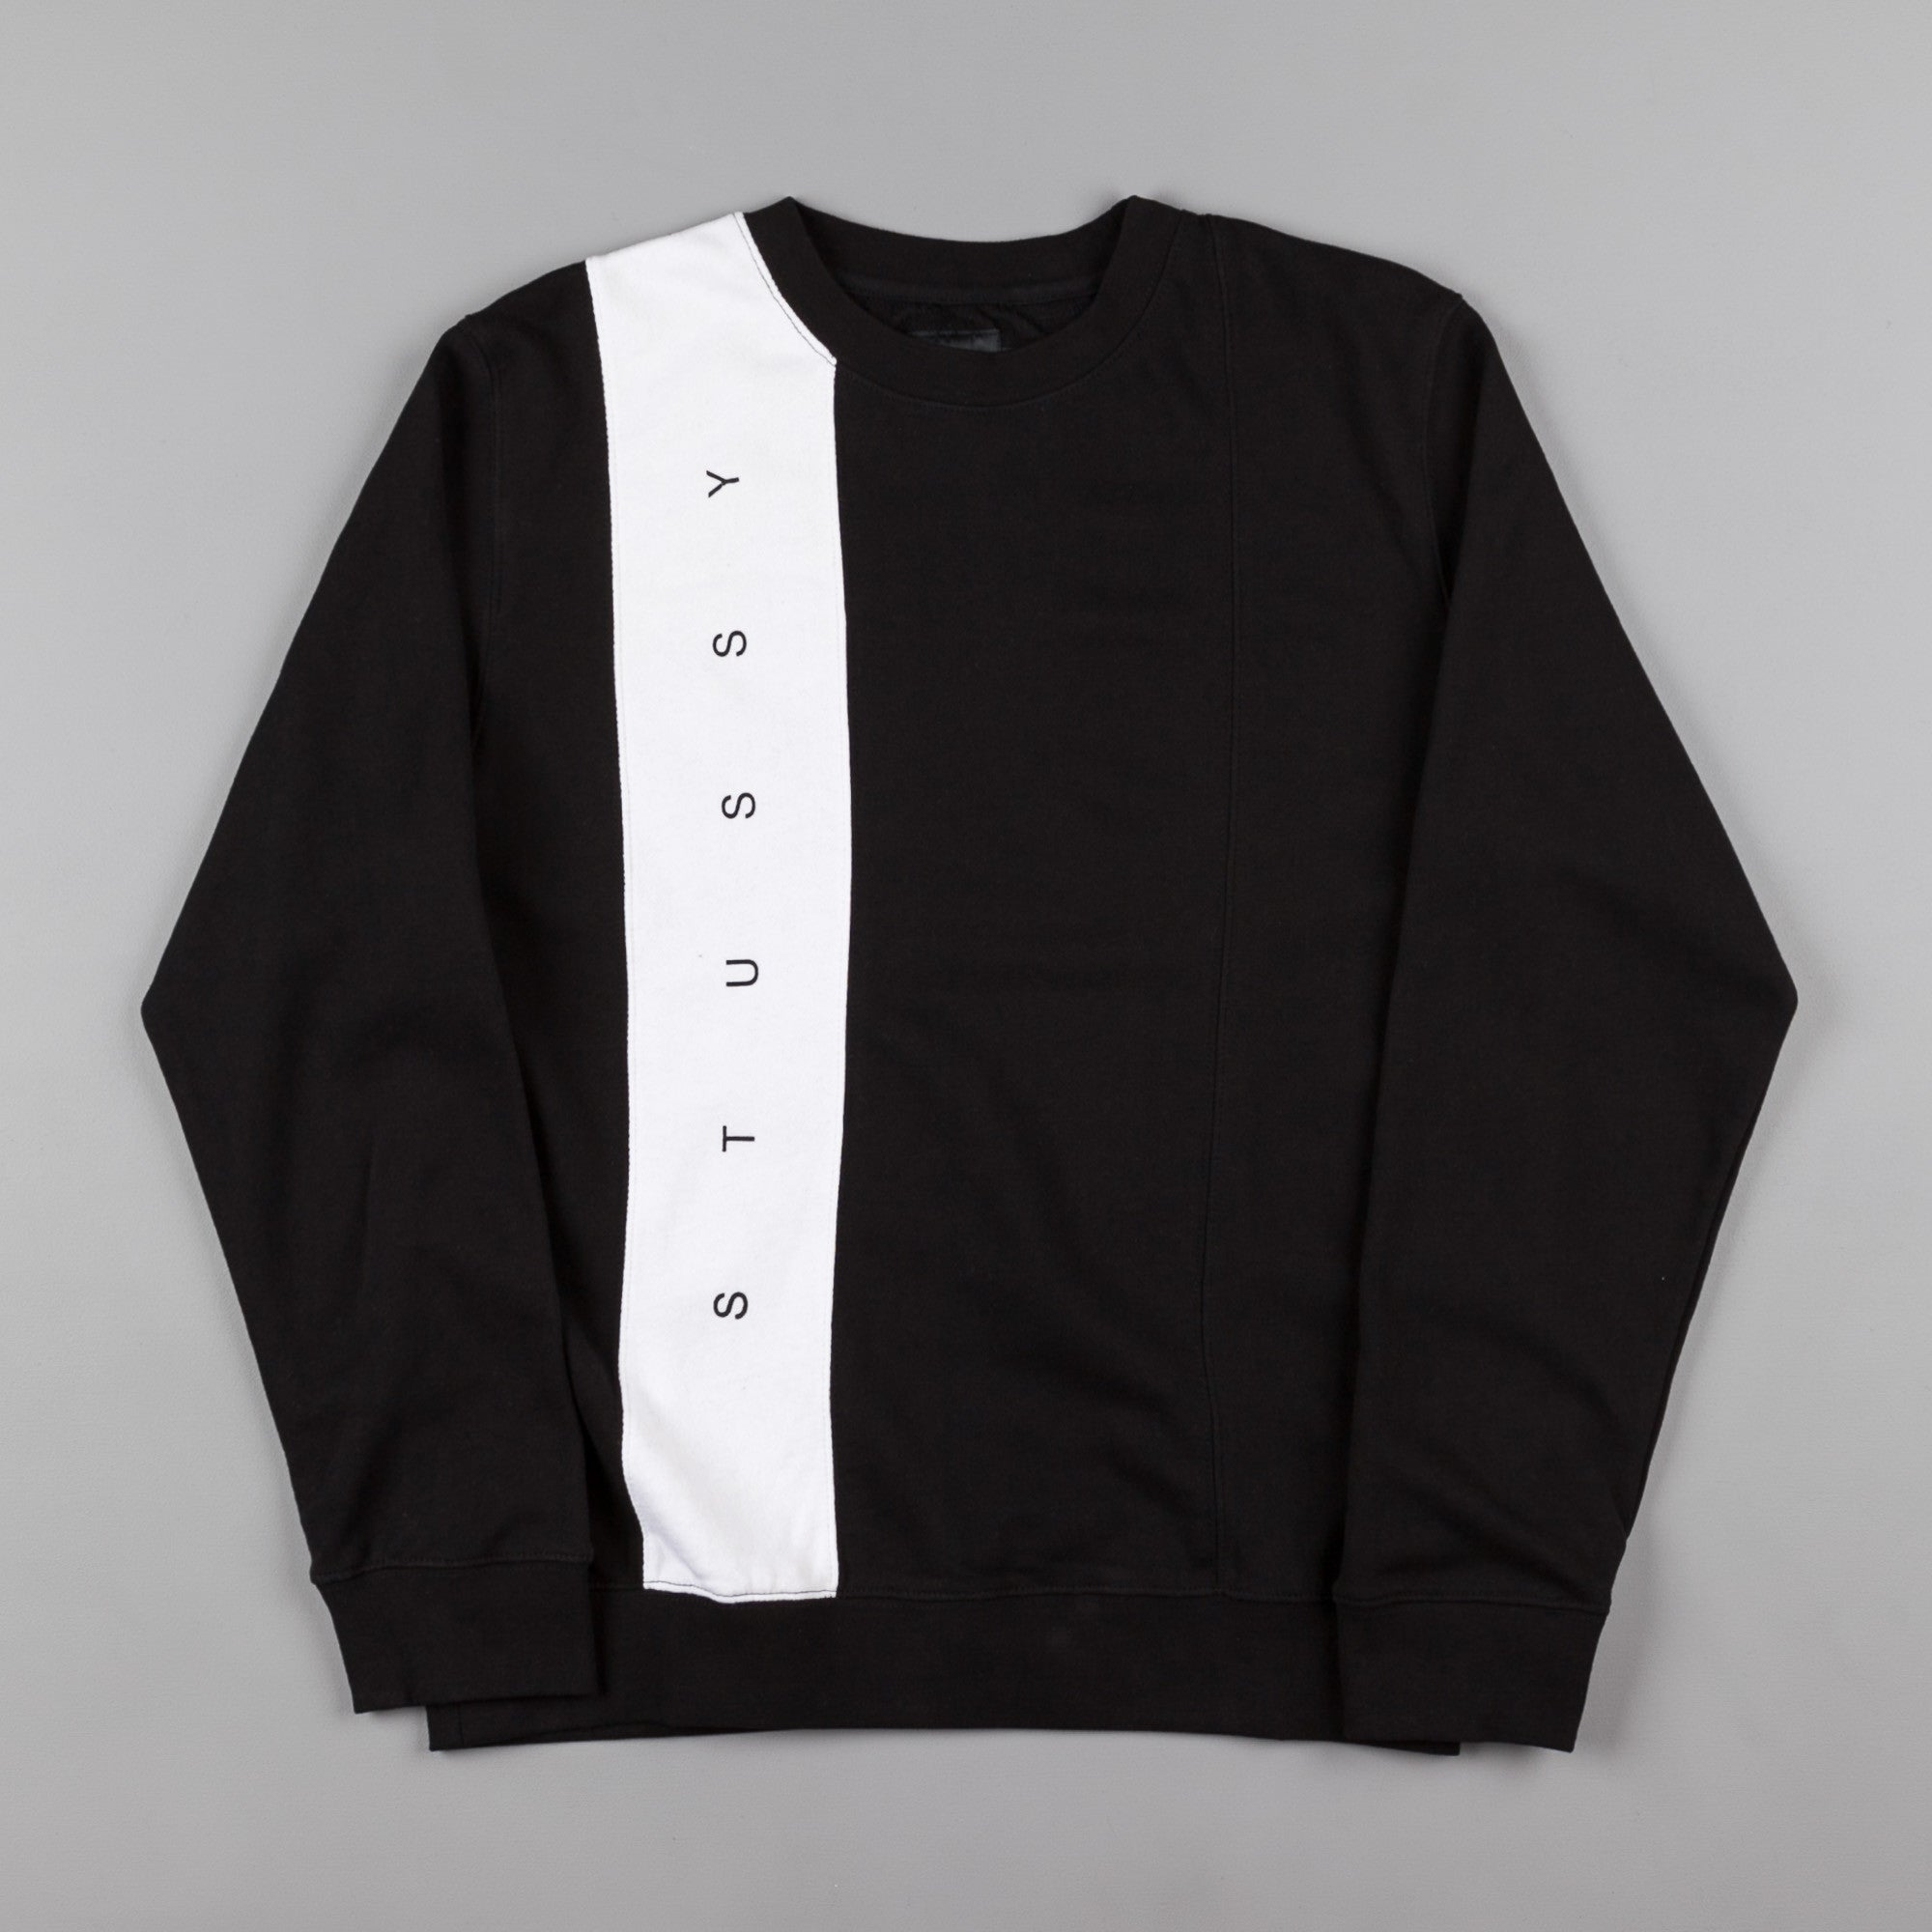 Stussy Paneled Crewneck Sweatshirt - Black